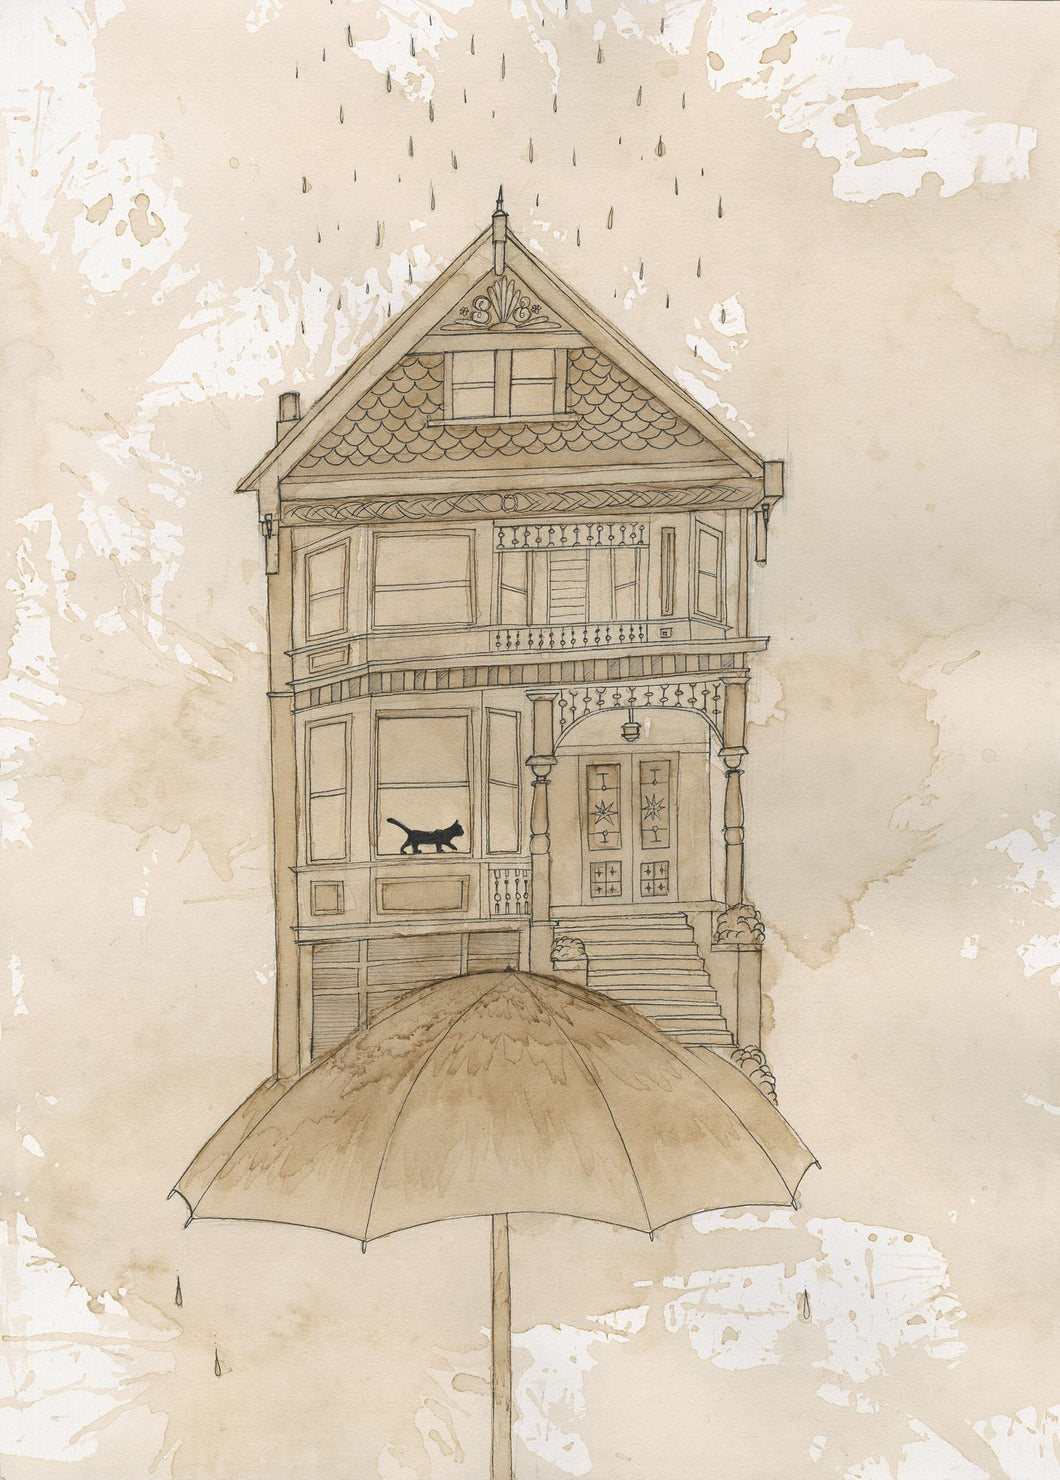 Limited Edition Umbrella House Signed Print